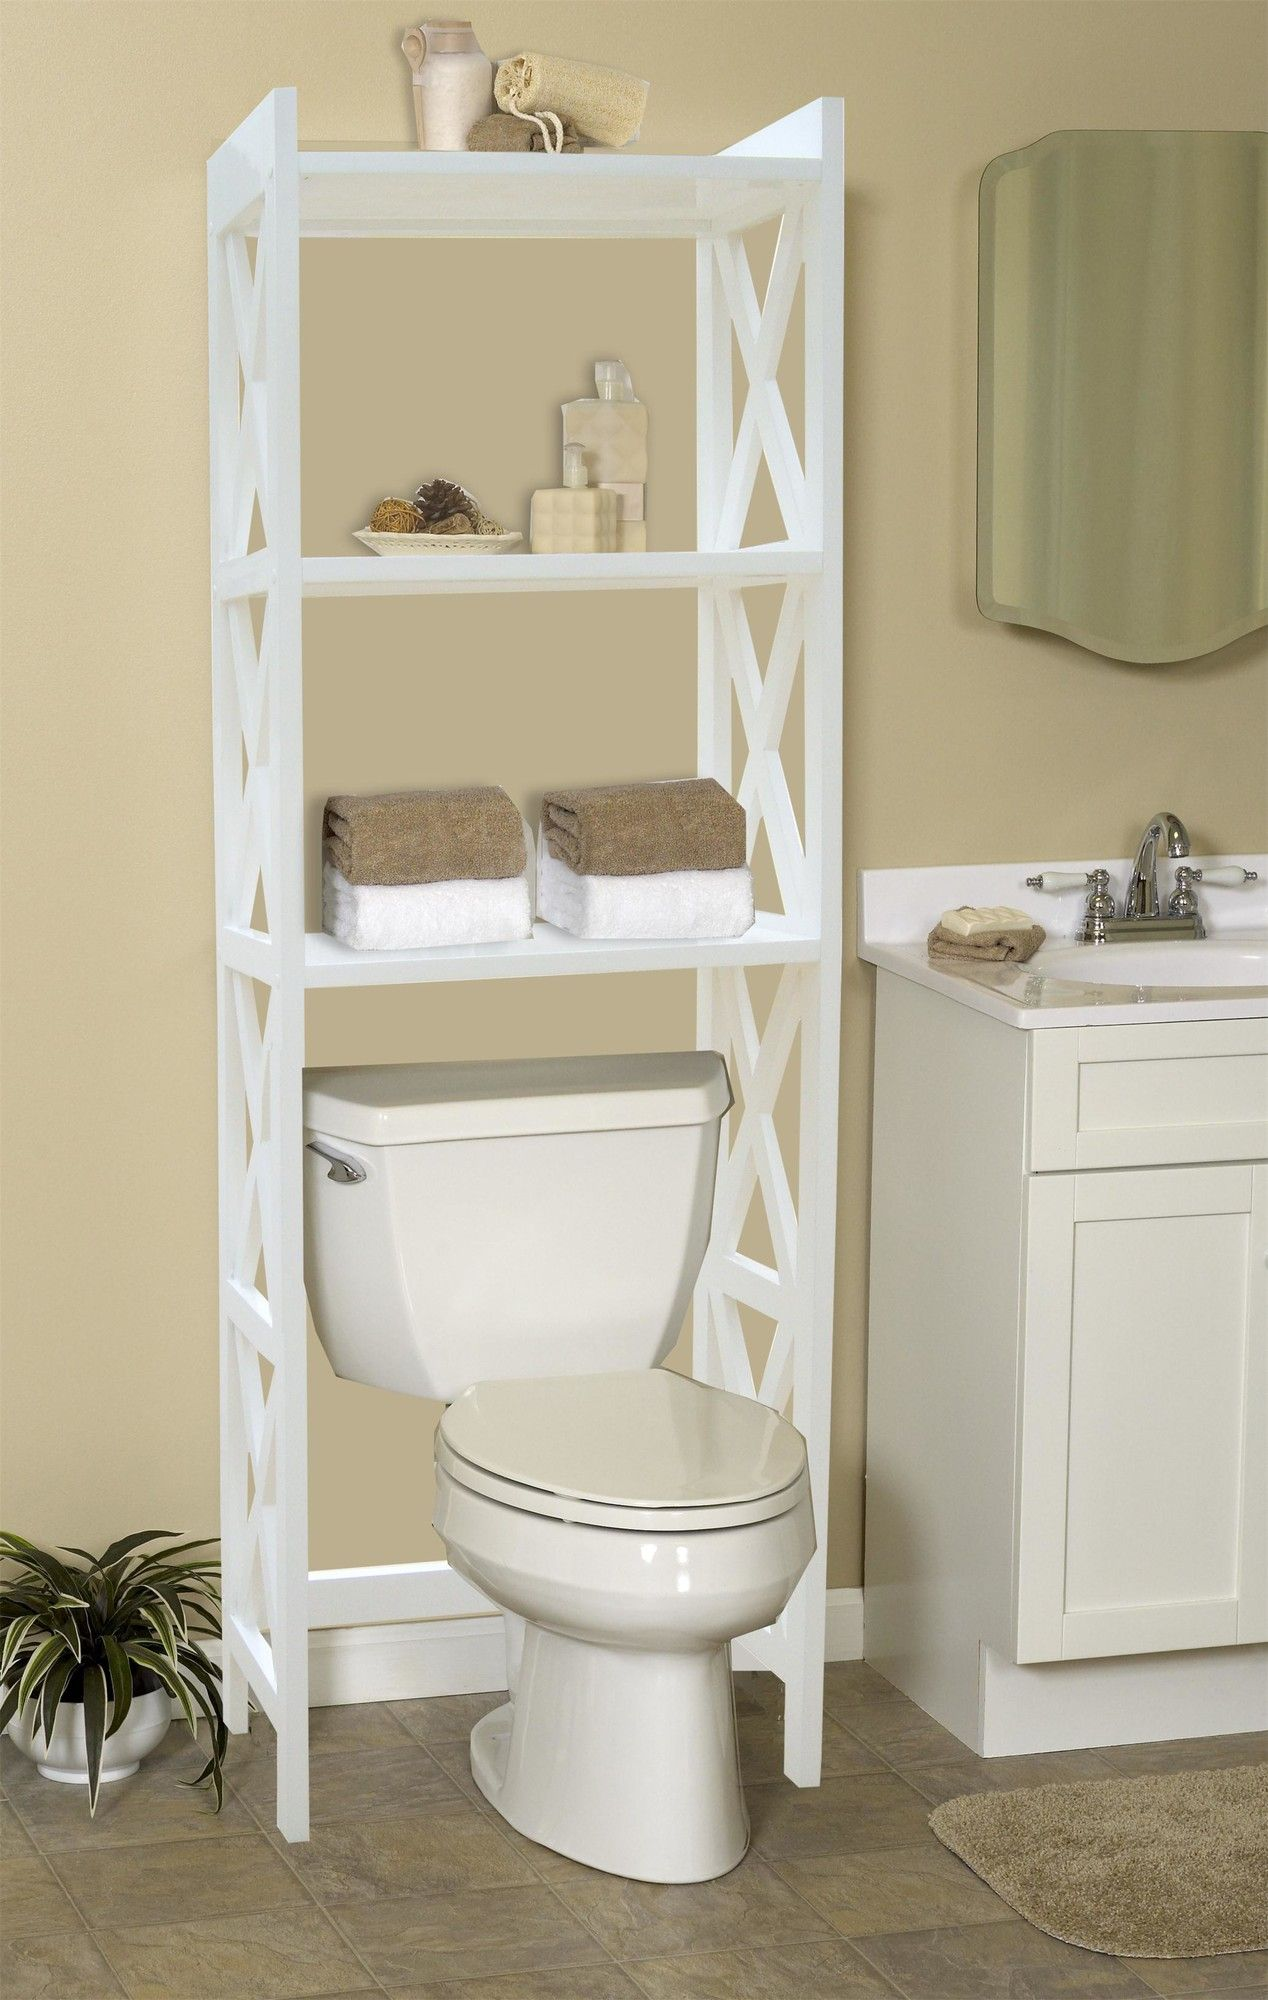 Bathroom Space Saver 24 5 W X 62 H Over The Toilet Storage Bathroom Space Saver Bathroom Space Toilet Storage